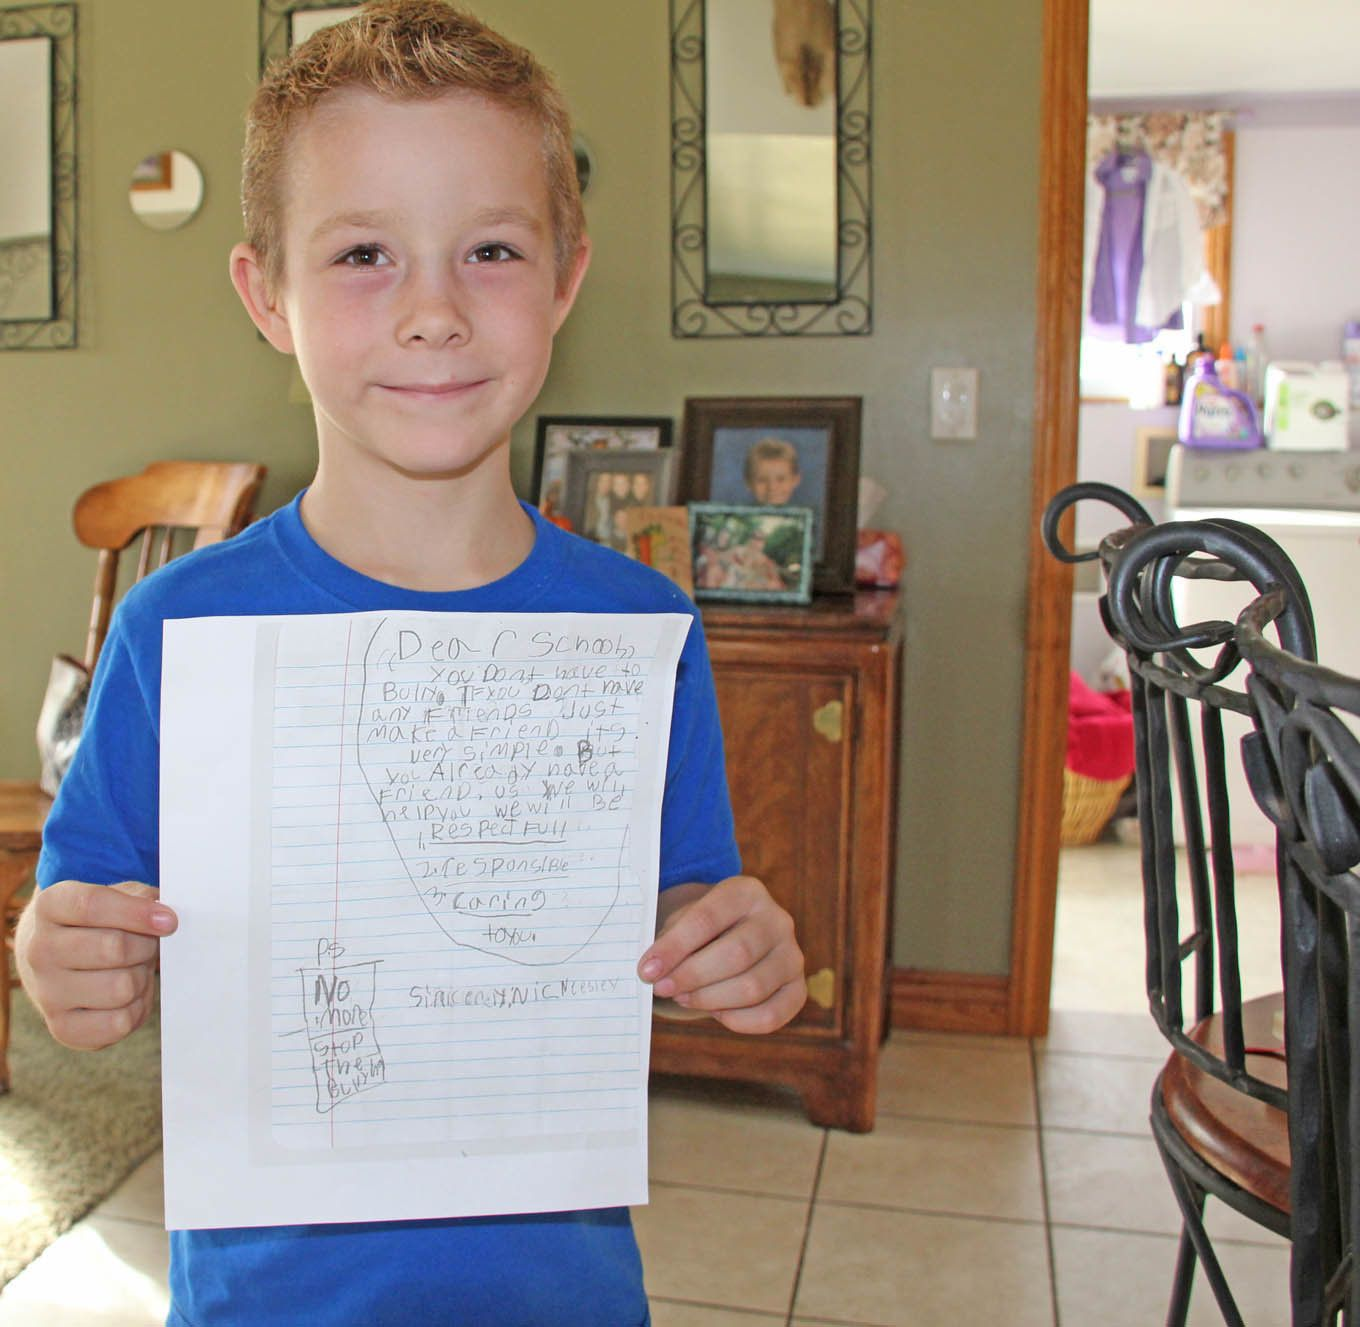 8 year old Nicolas Neesley shows his anti-bullying letter. Jennifer Coe-Harris photo